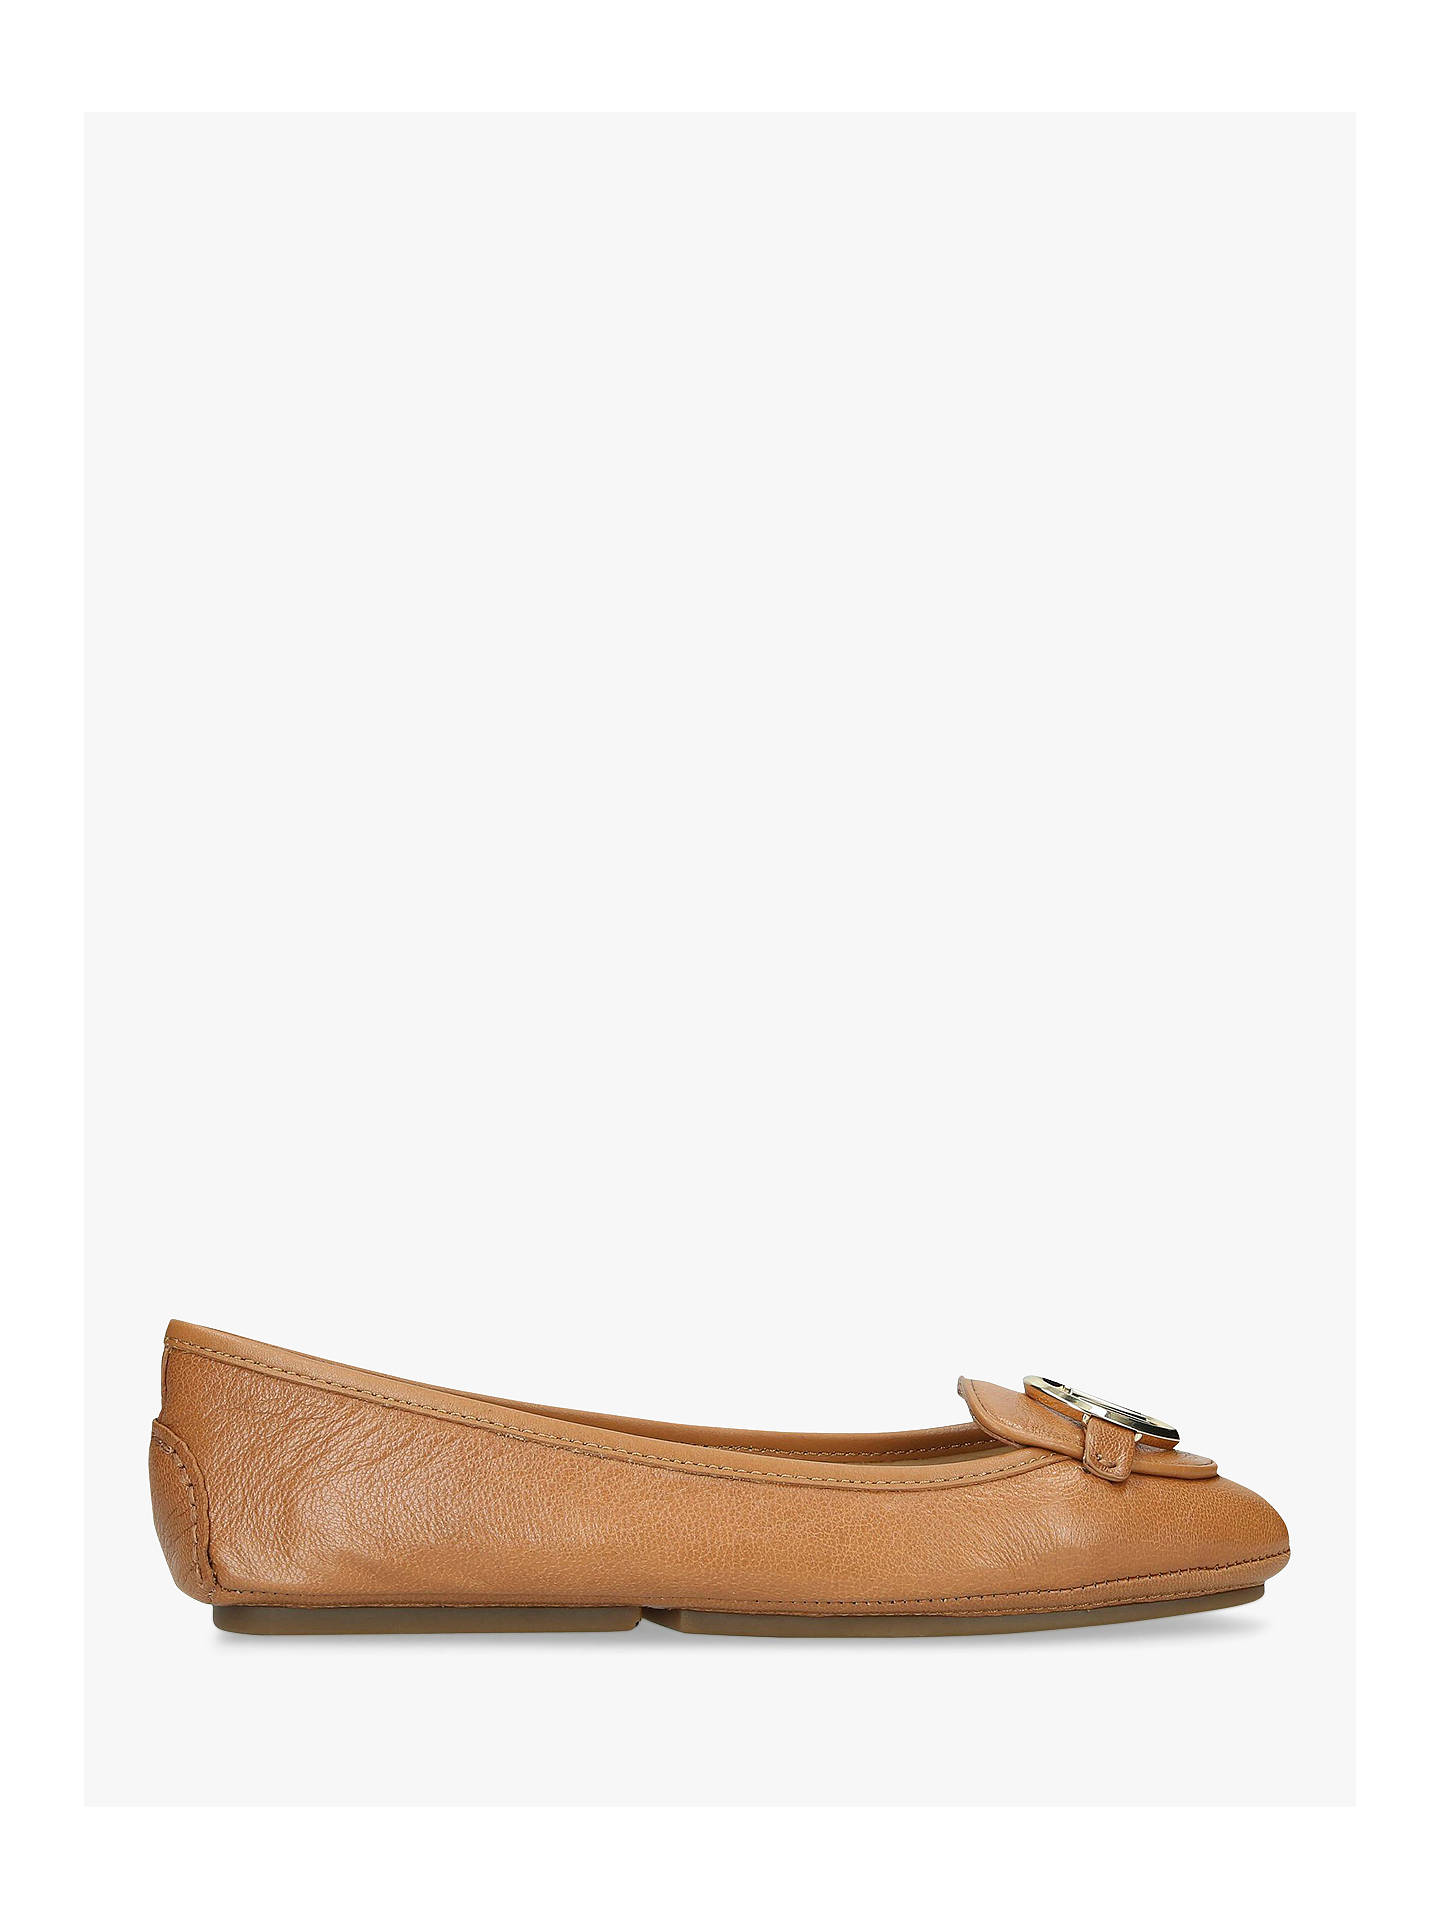 ad62ccdd2aa Buy MICHAEL Michael Kors Lillie Moccasins, Natural Taupe Leather, 5 Online  at johnlewis.